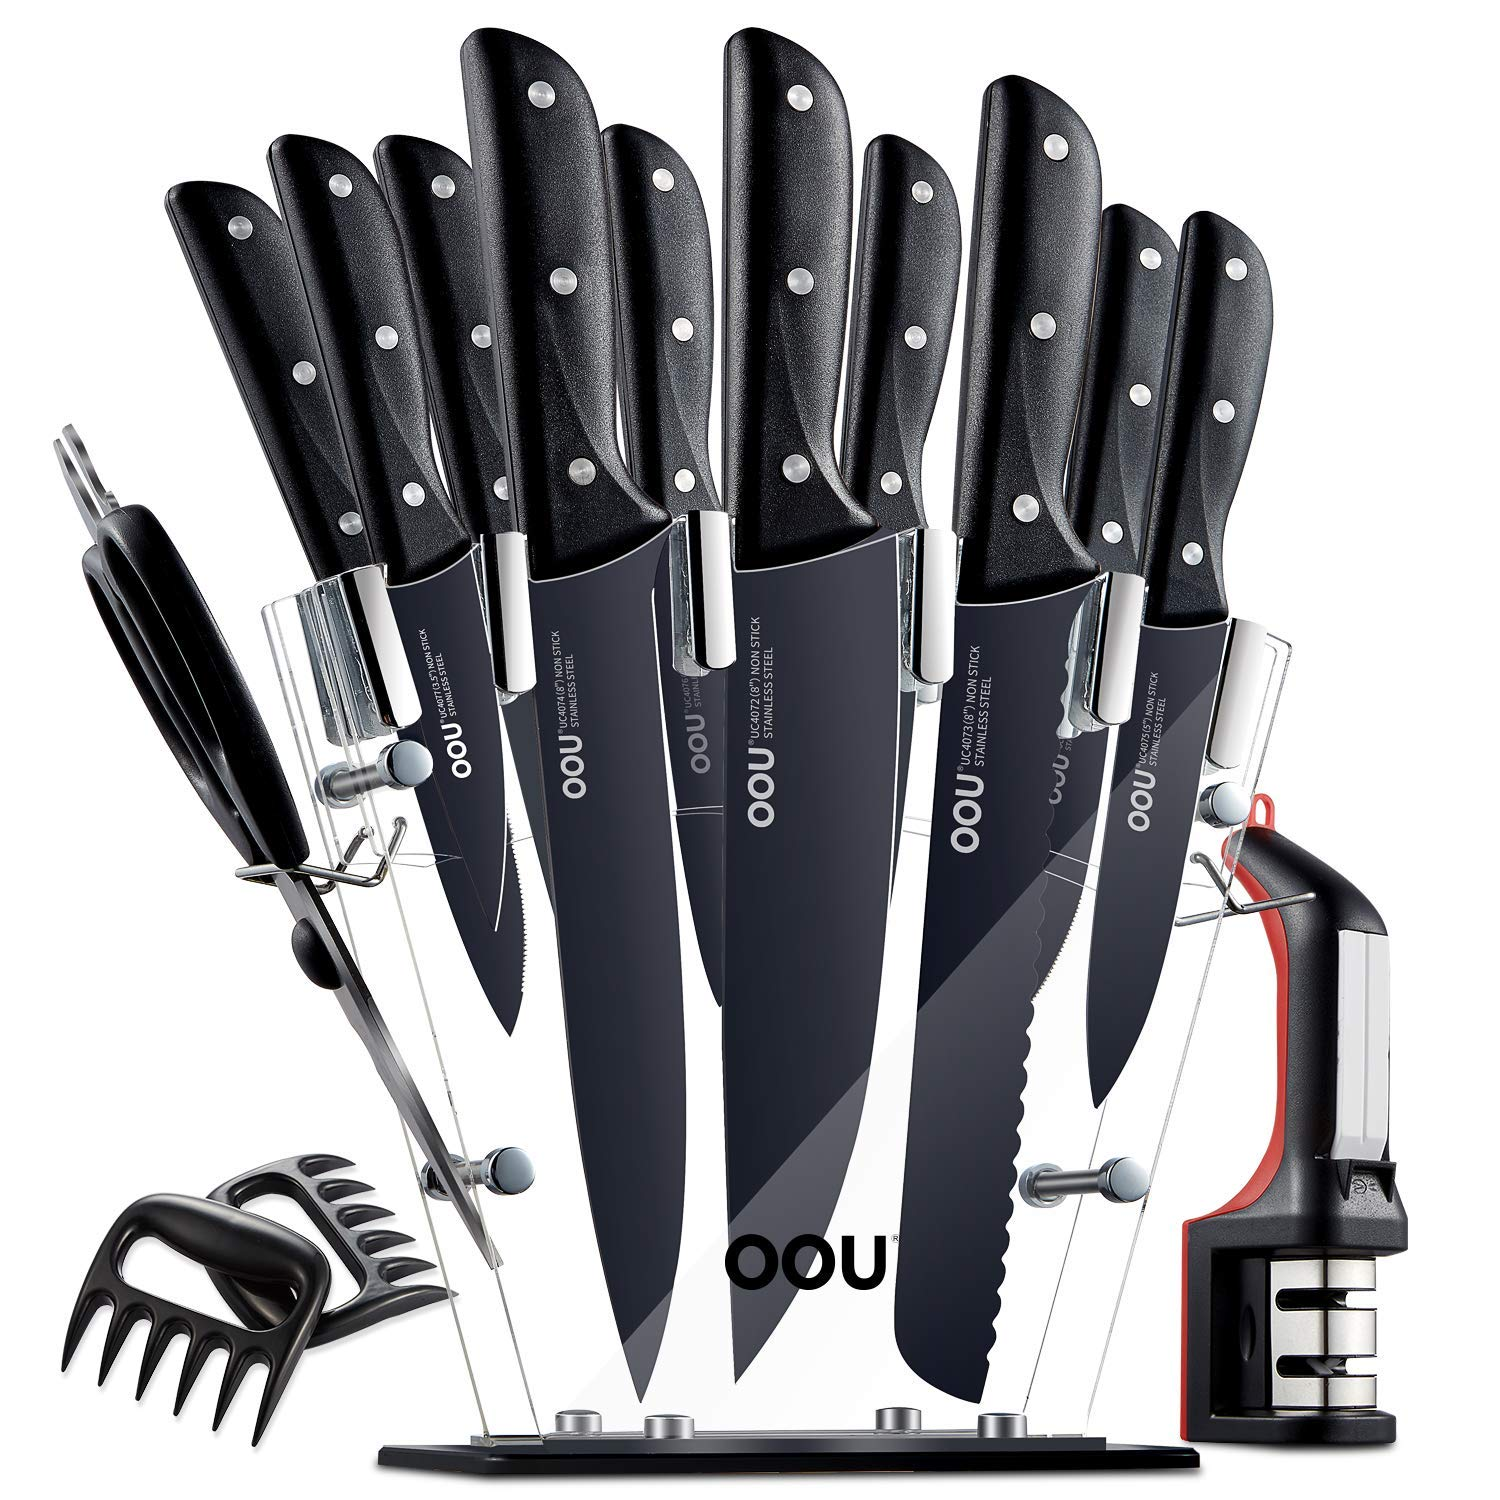 Knife Set, OOU Kitchen Knife Set, 15 Pieces Full Tang Triple Rivet, High Carbon Stainless Steel, FDA Certified BO Oxidation for Anti-rusting, Ultra Sharp Premium Edge Tech, Black Chef Series by OOU! (Image #1)